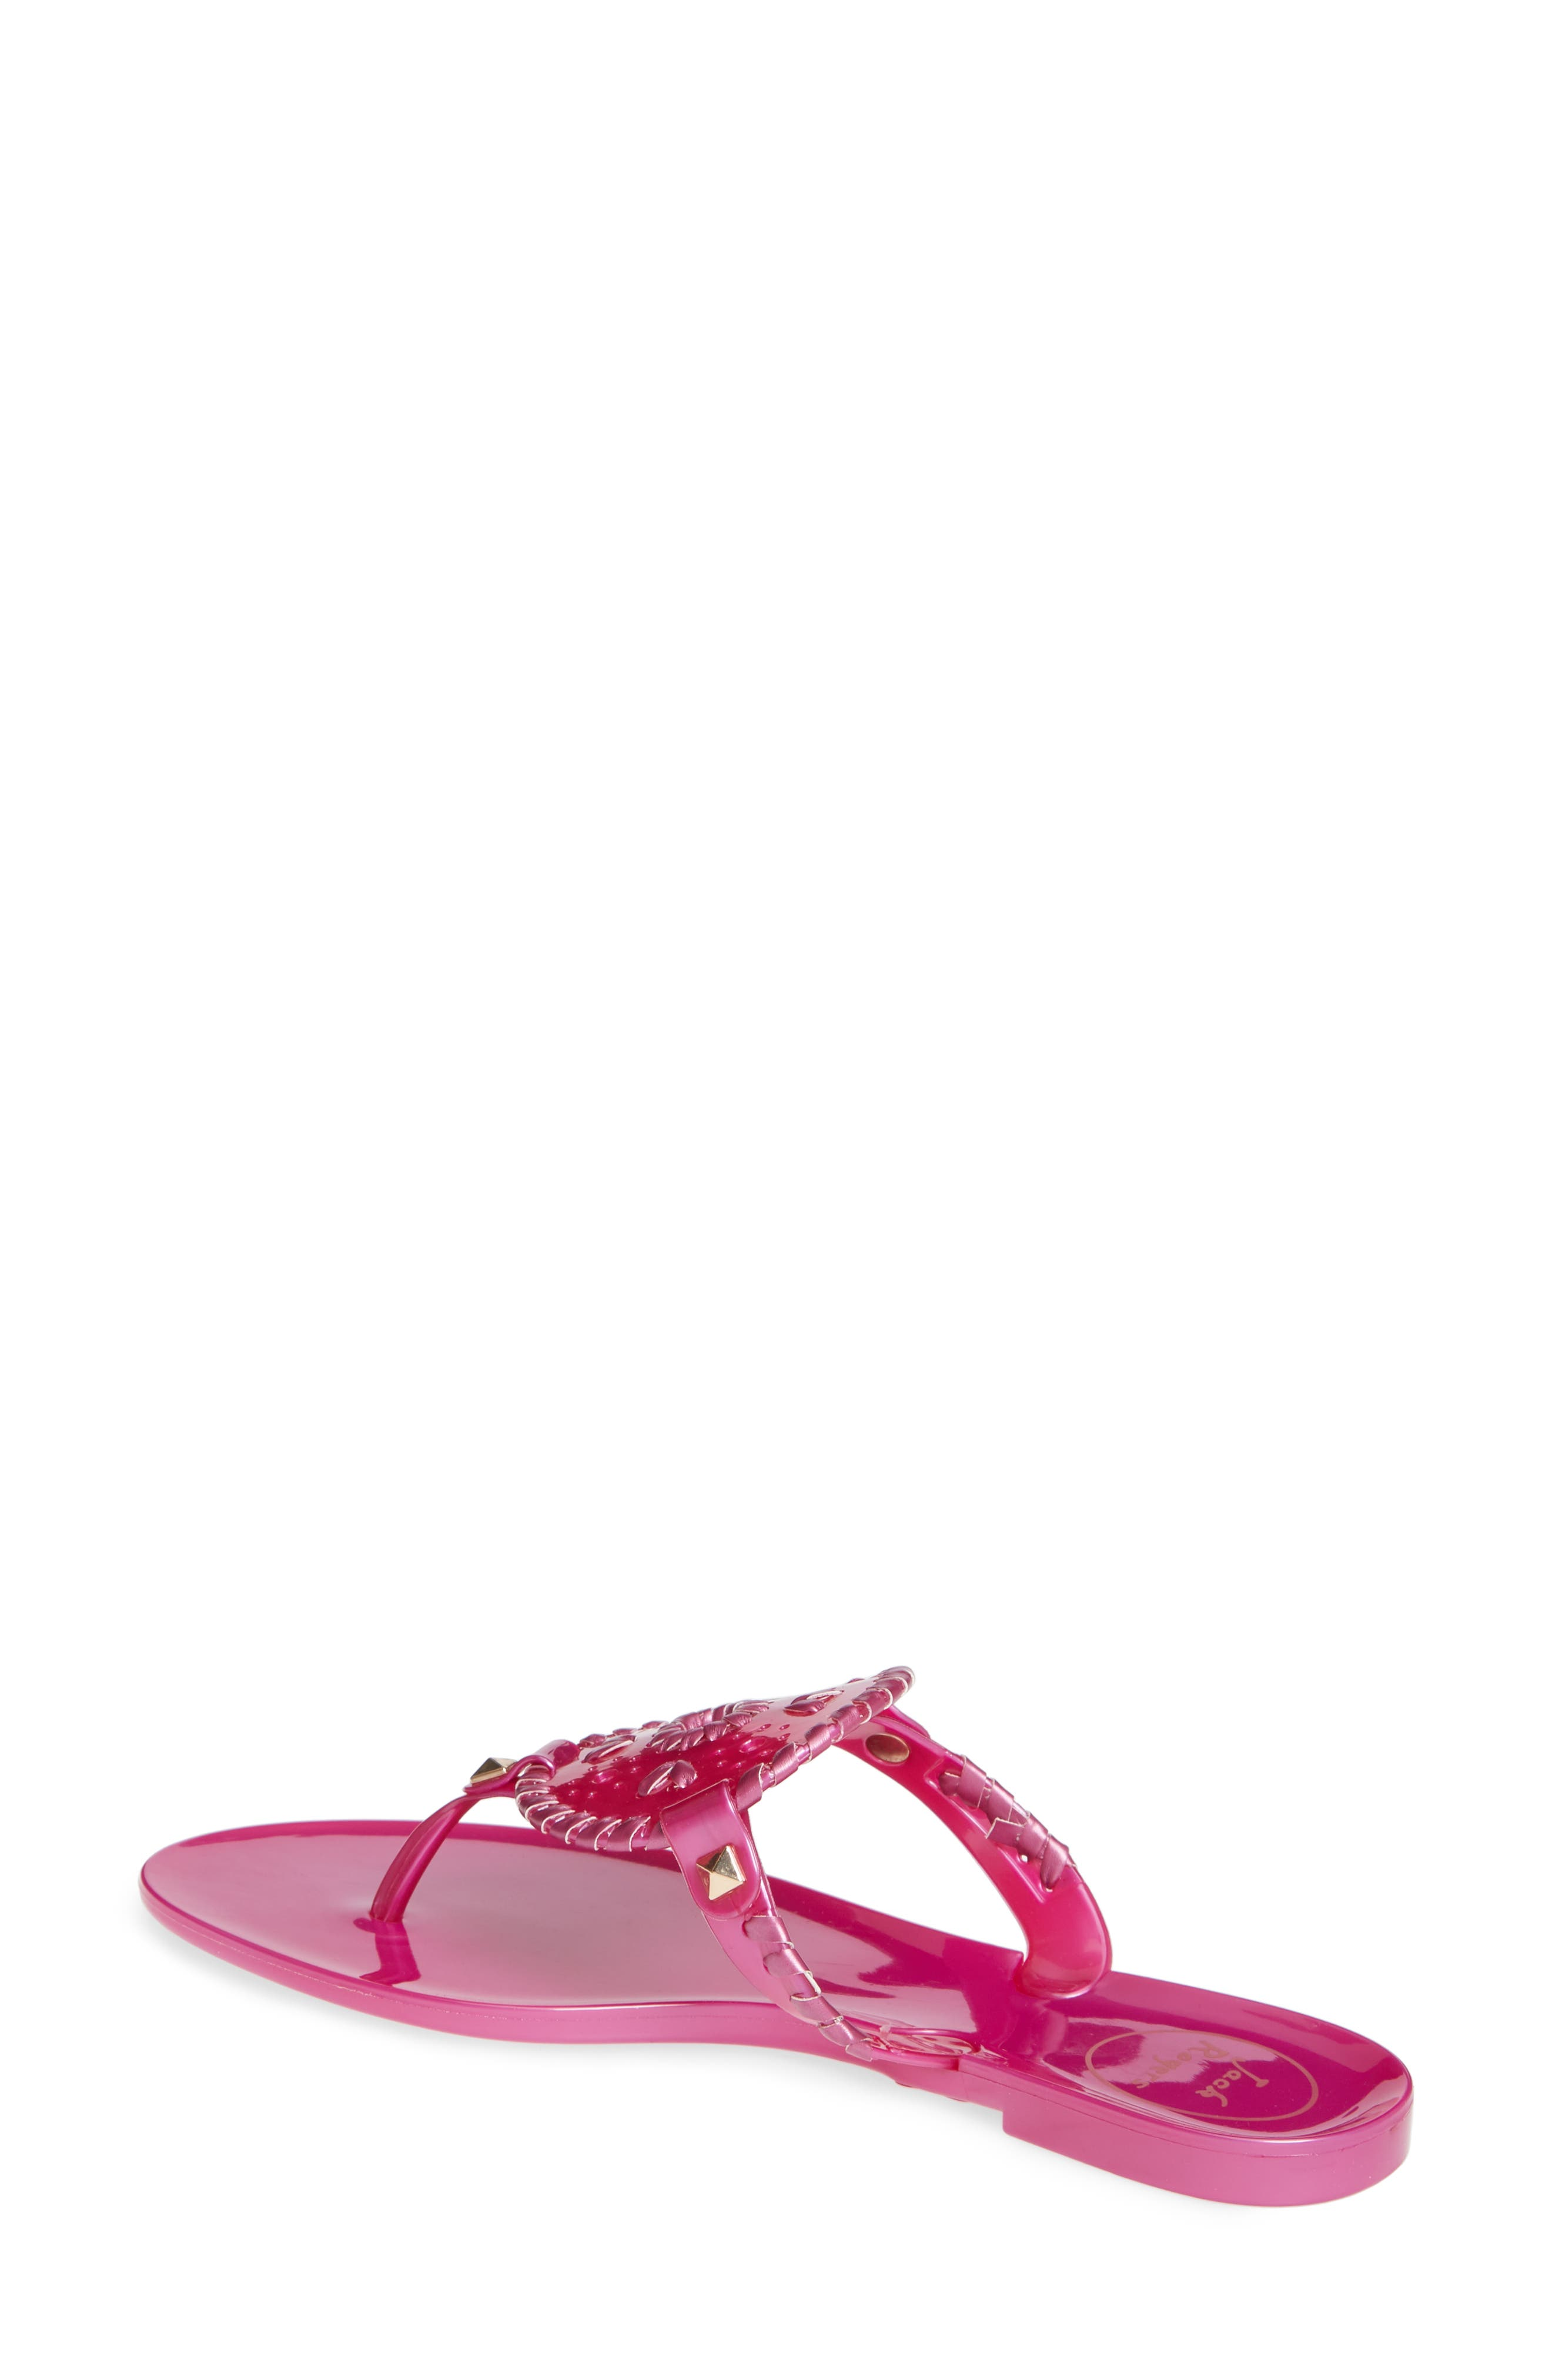 'Georgica' Jelly Flip Flop,                             Alternate thumbnail 2, color,                             BRIGHT PINK